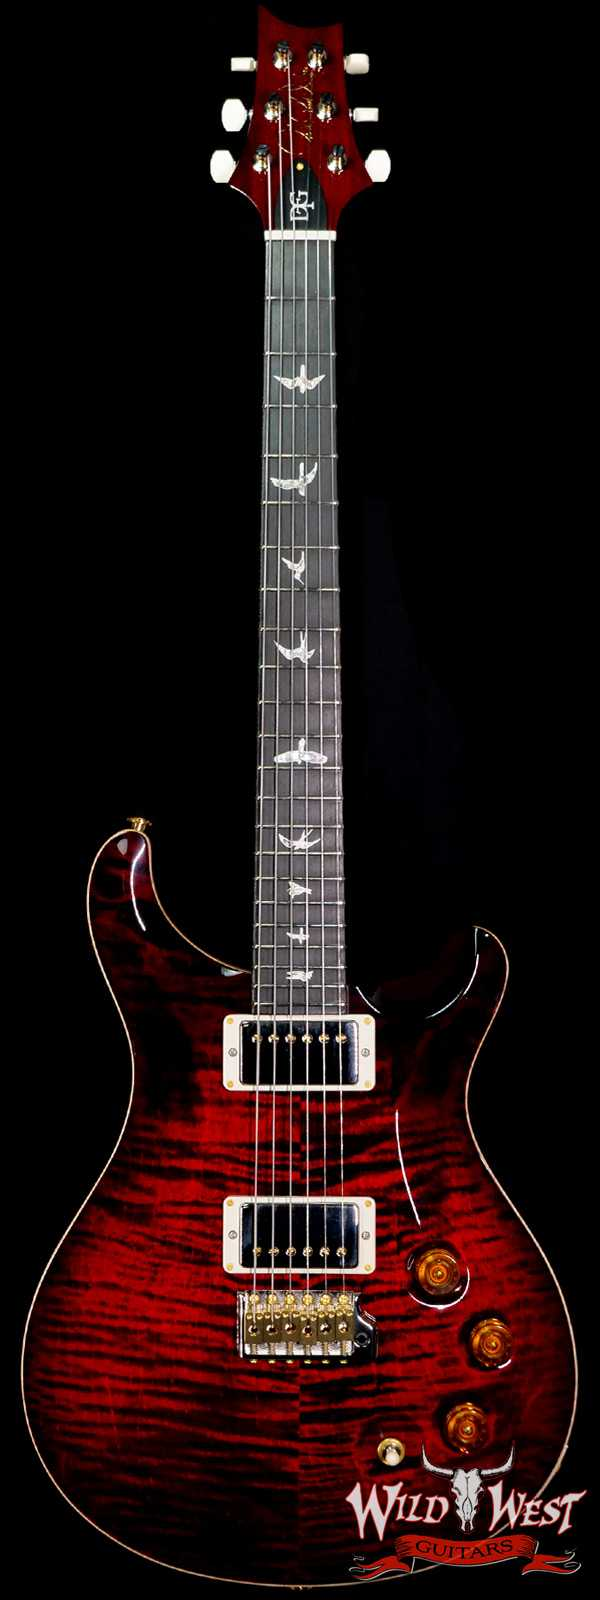 Paul Reed Smith PRS 10 Top David Grissom Trem Signature DGT Birds Inlay Fire Red Smokeburst